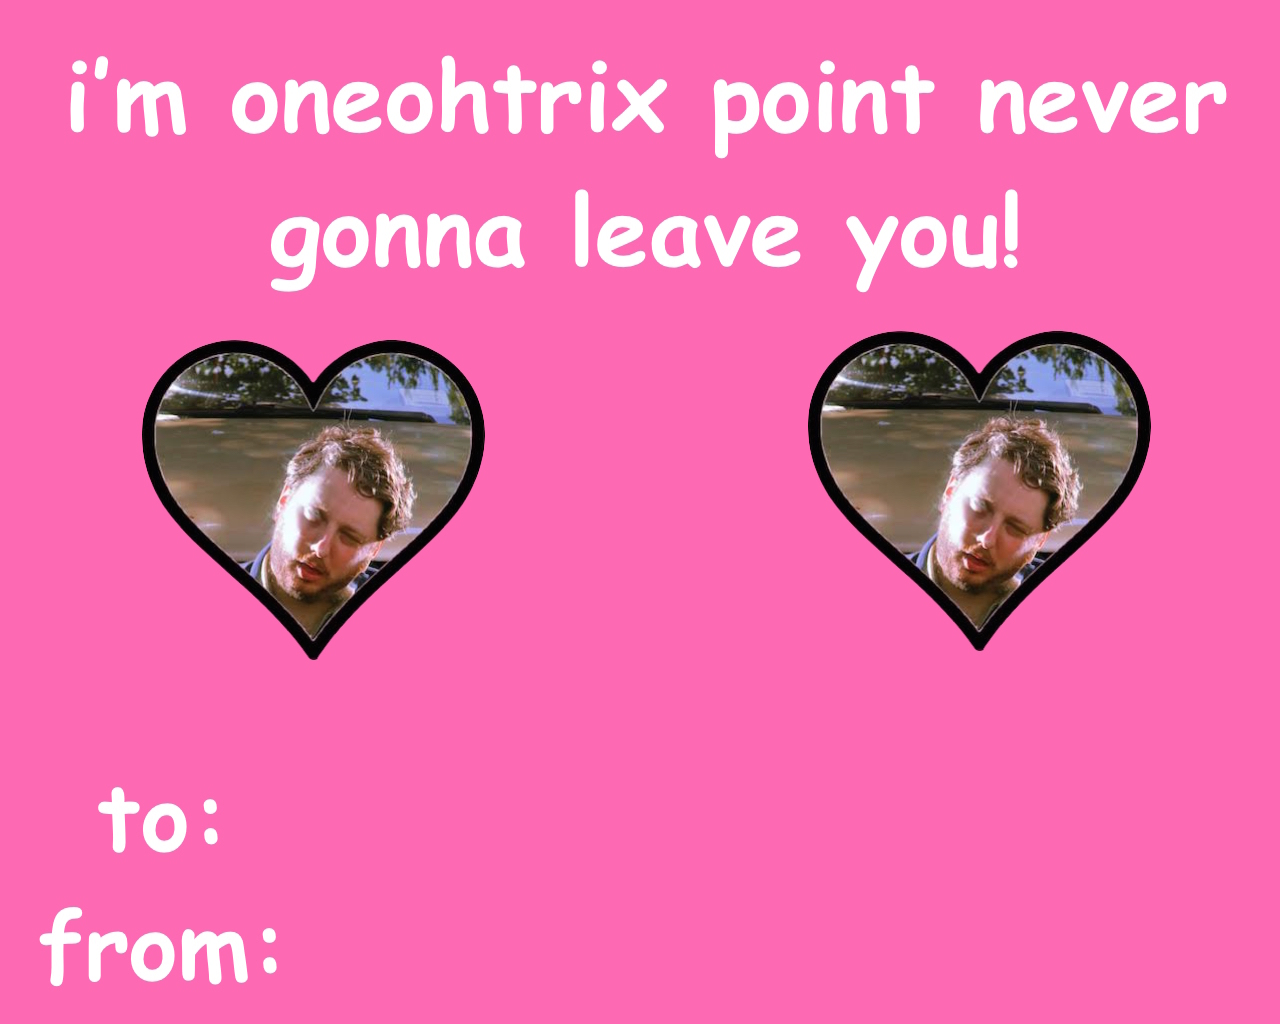 18 Cheeky Valentine's Day Cards To Send To Your Club Crush